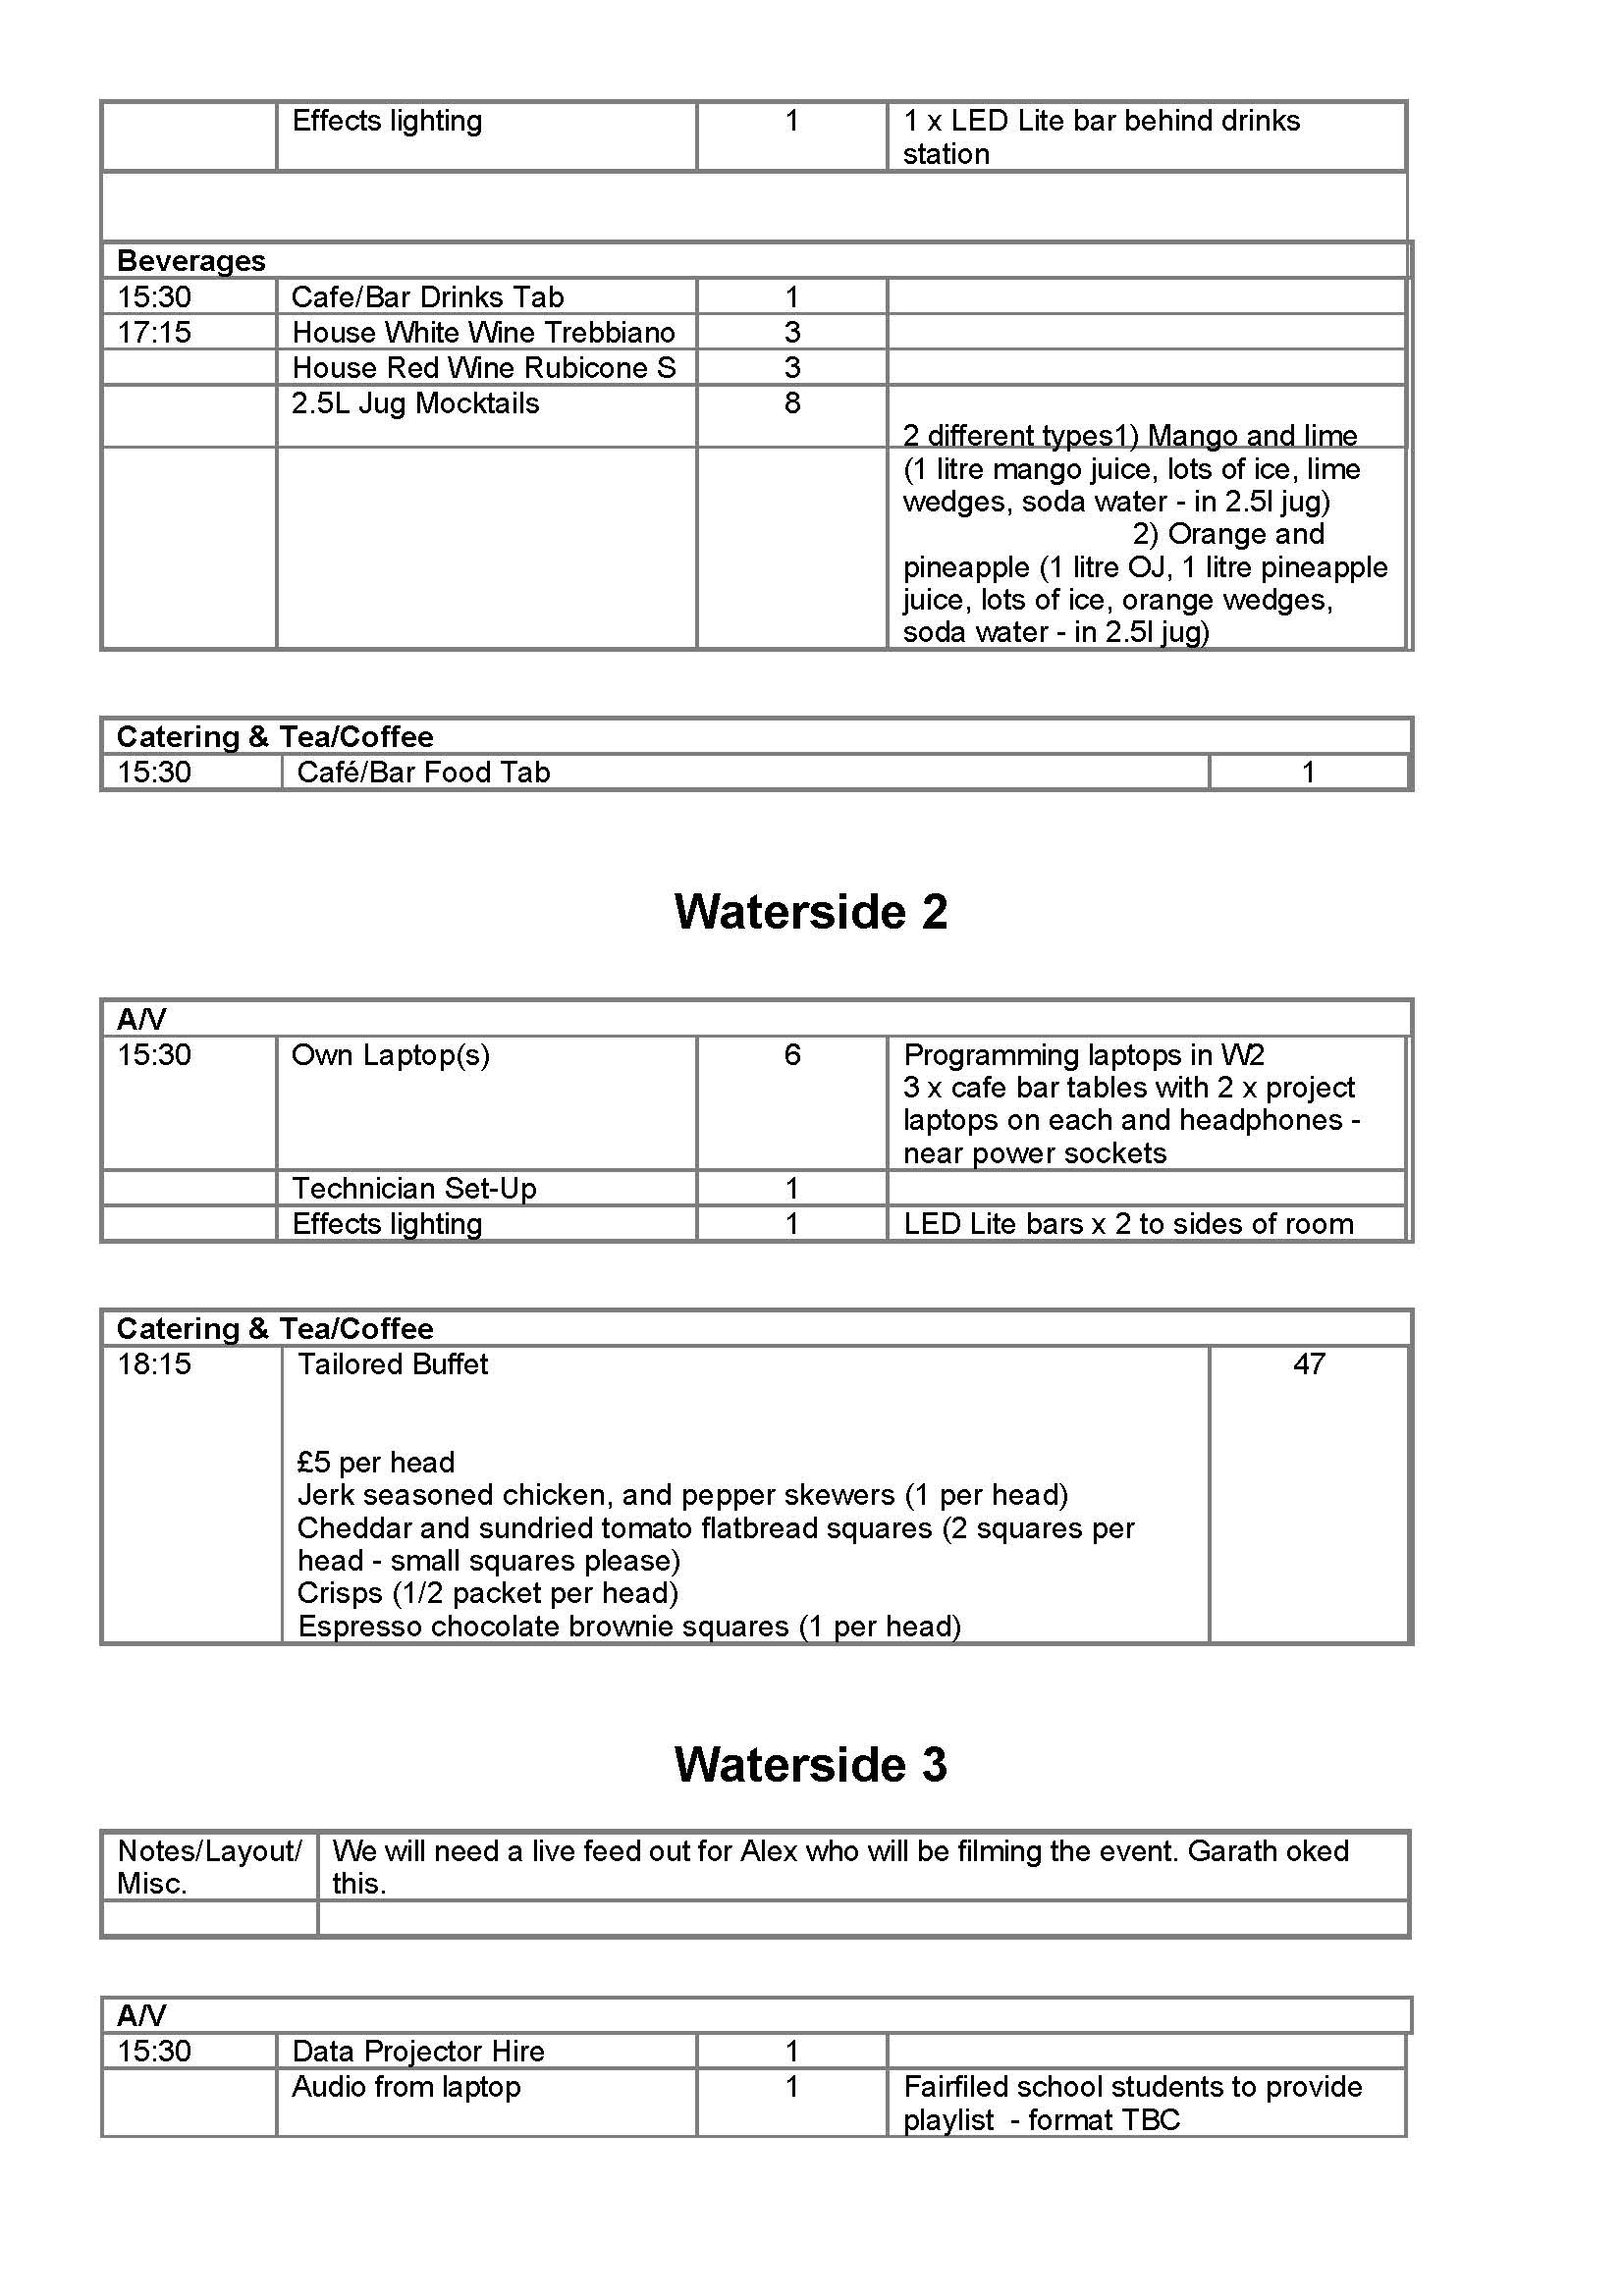 what is template function - watershed function sheet arrangement 4 page 2 future